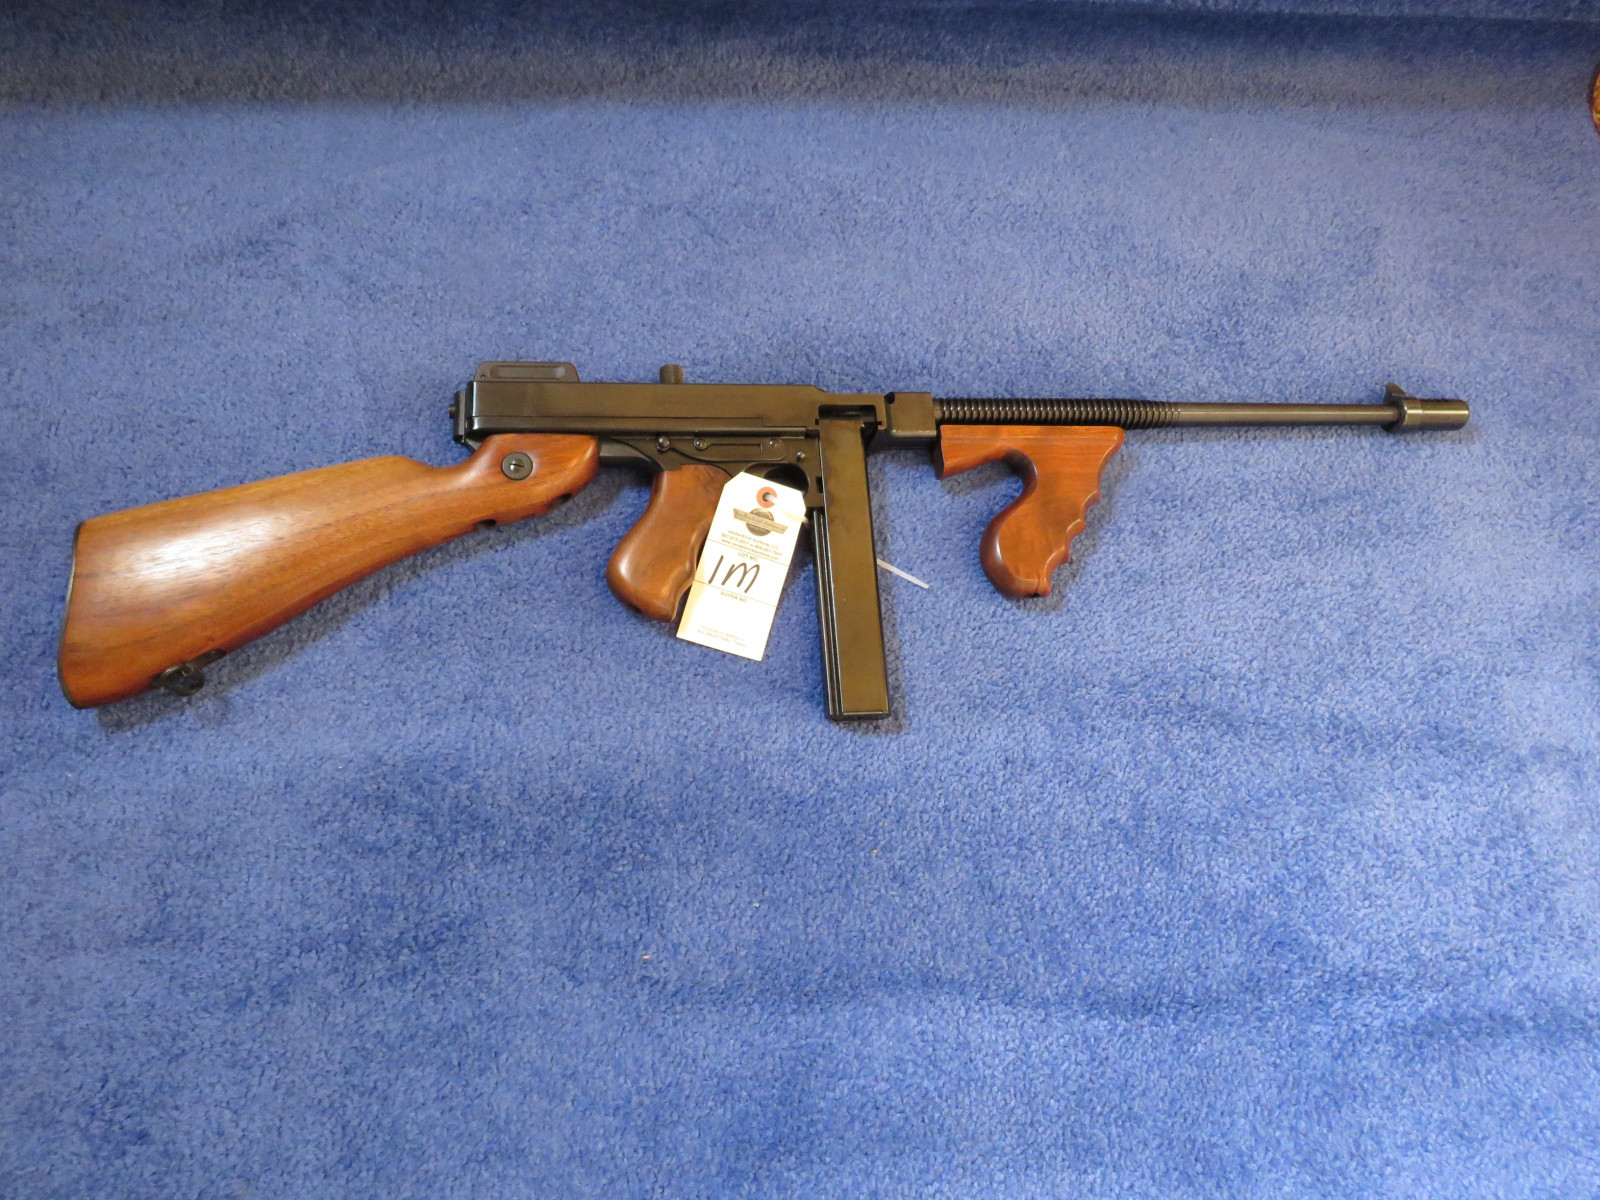 Thompson 1927 A1 Deluxe Semi-Automatic Rifle   29837 - Image 2